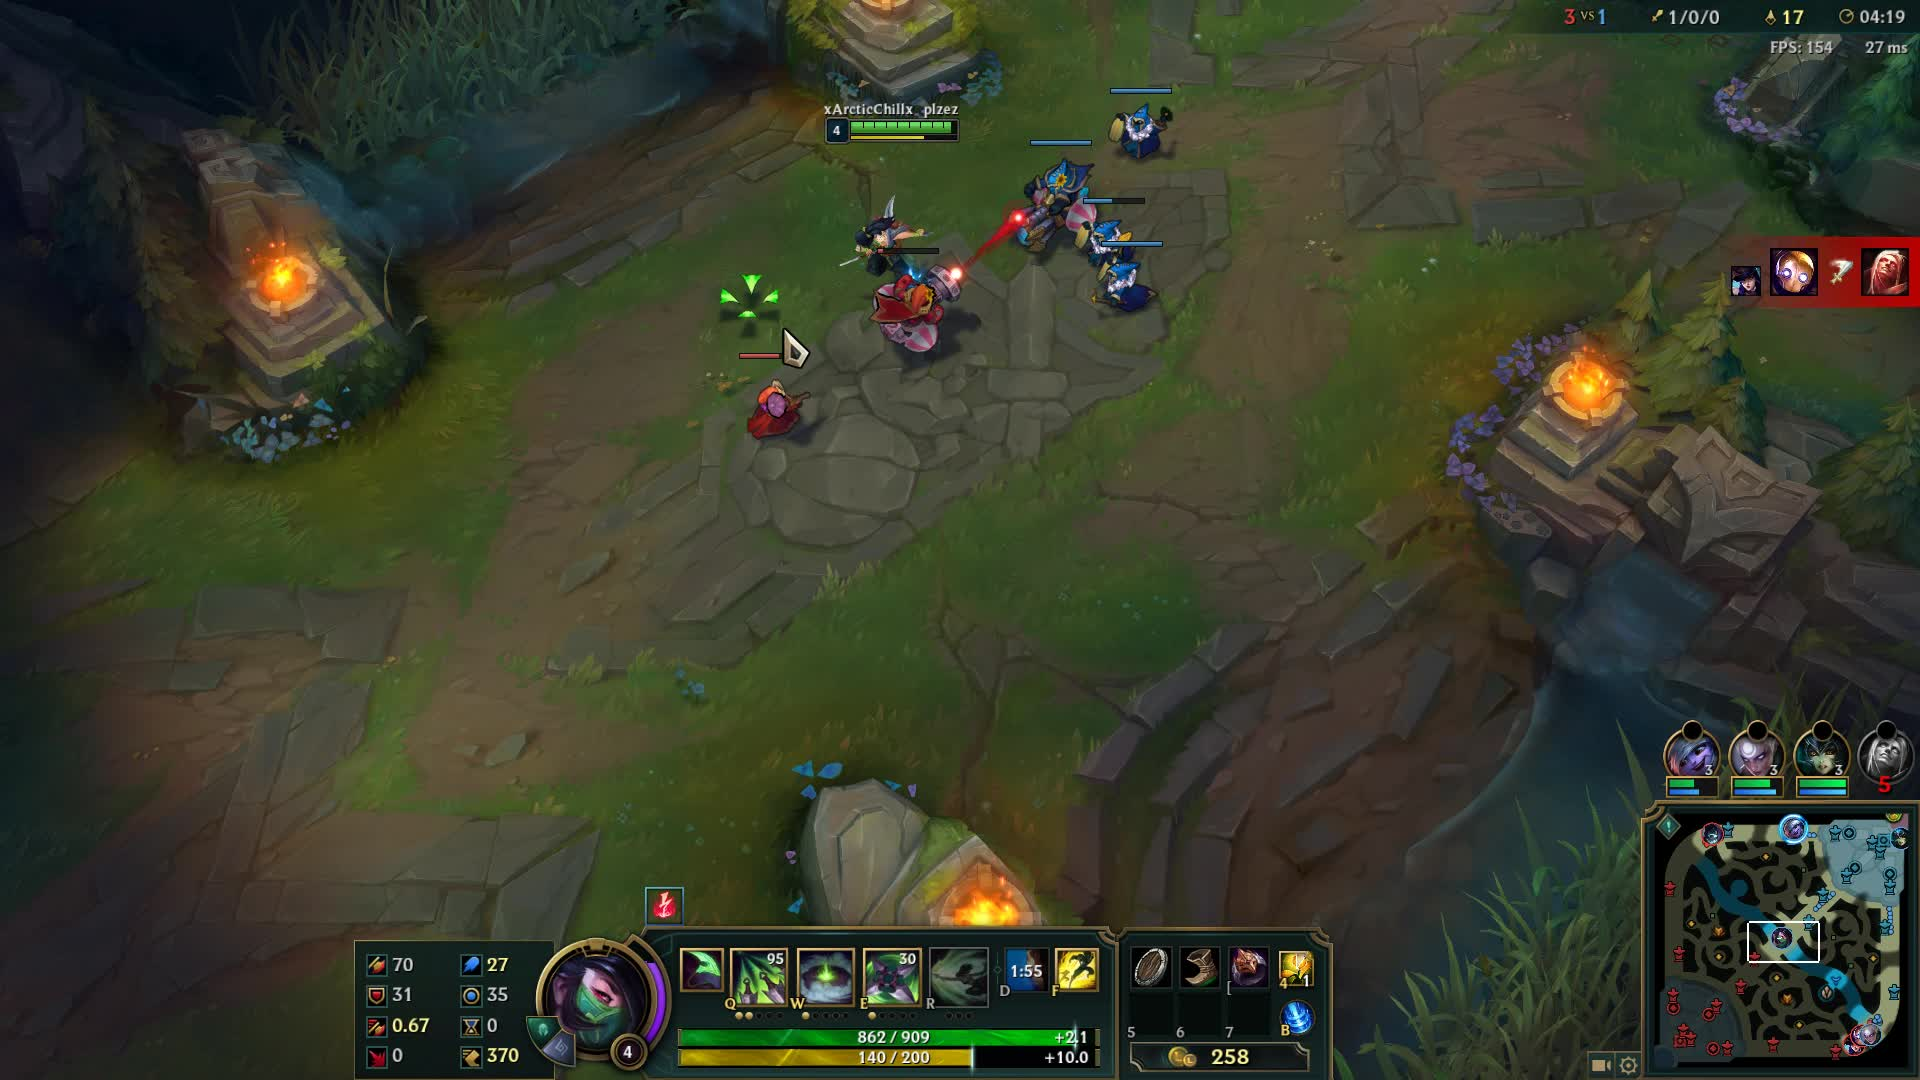 leagueoflegends, Vayne ganks GIFs